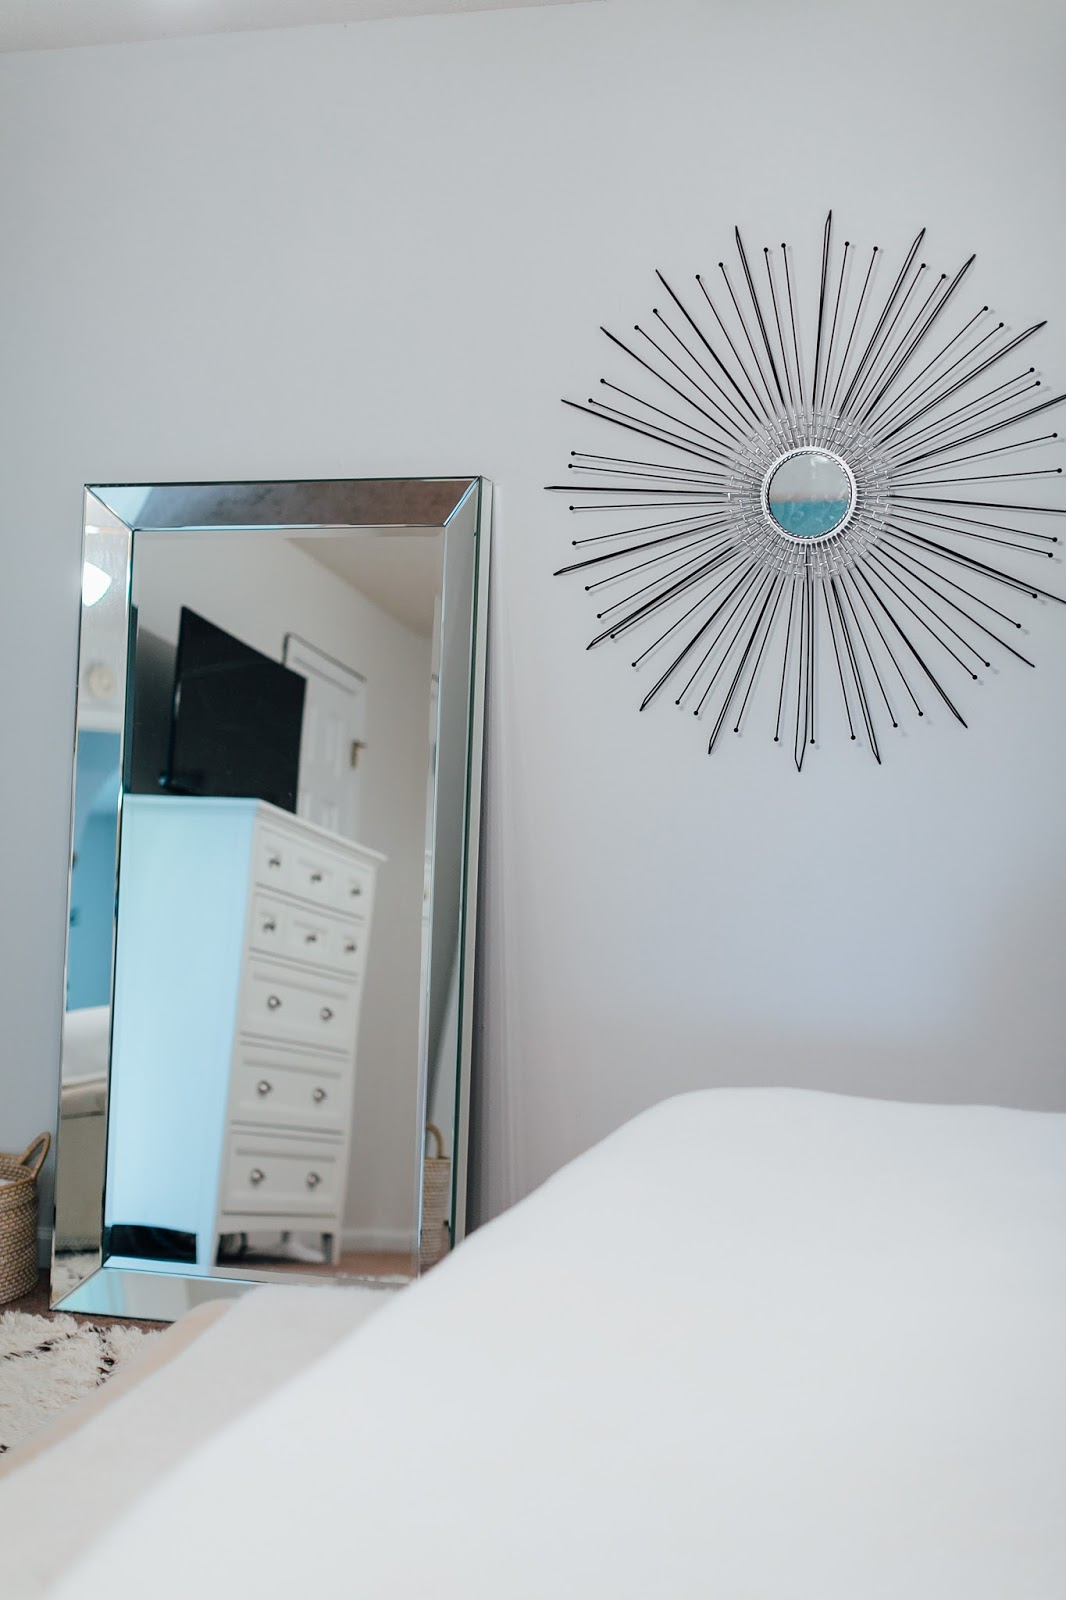 Bedroom Makeover: How to Update Your Bedroom for a Summer Refresh by popular blogger Walking in Memphis in High Heels